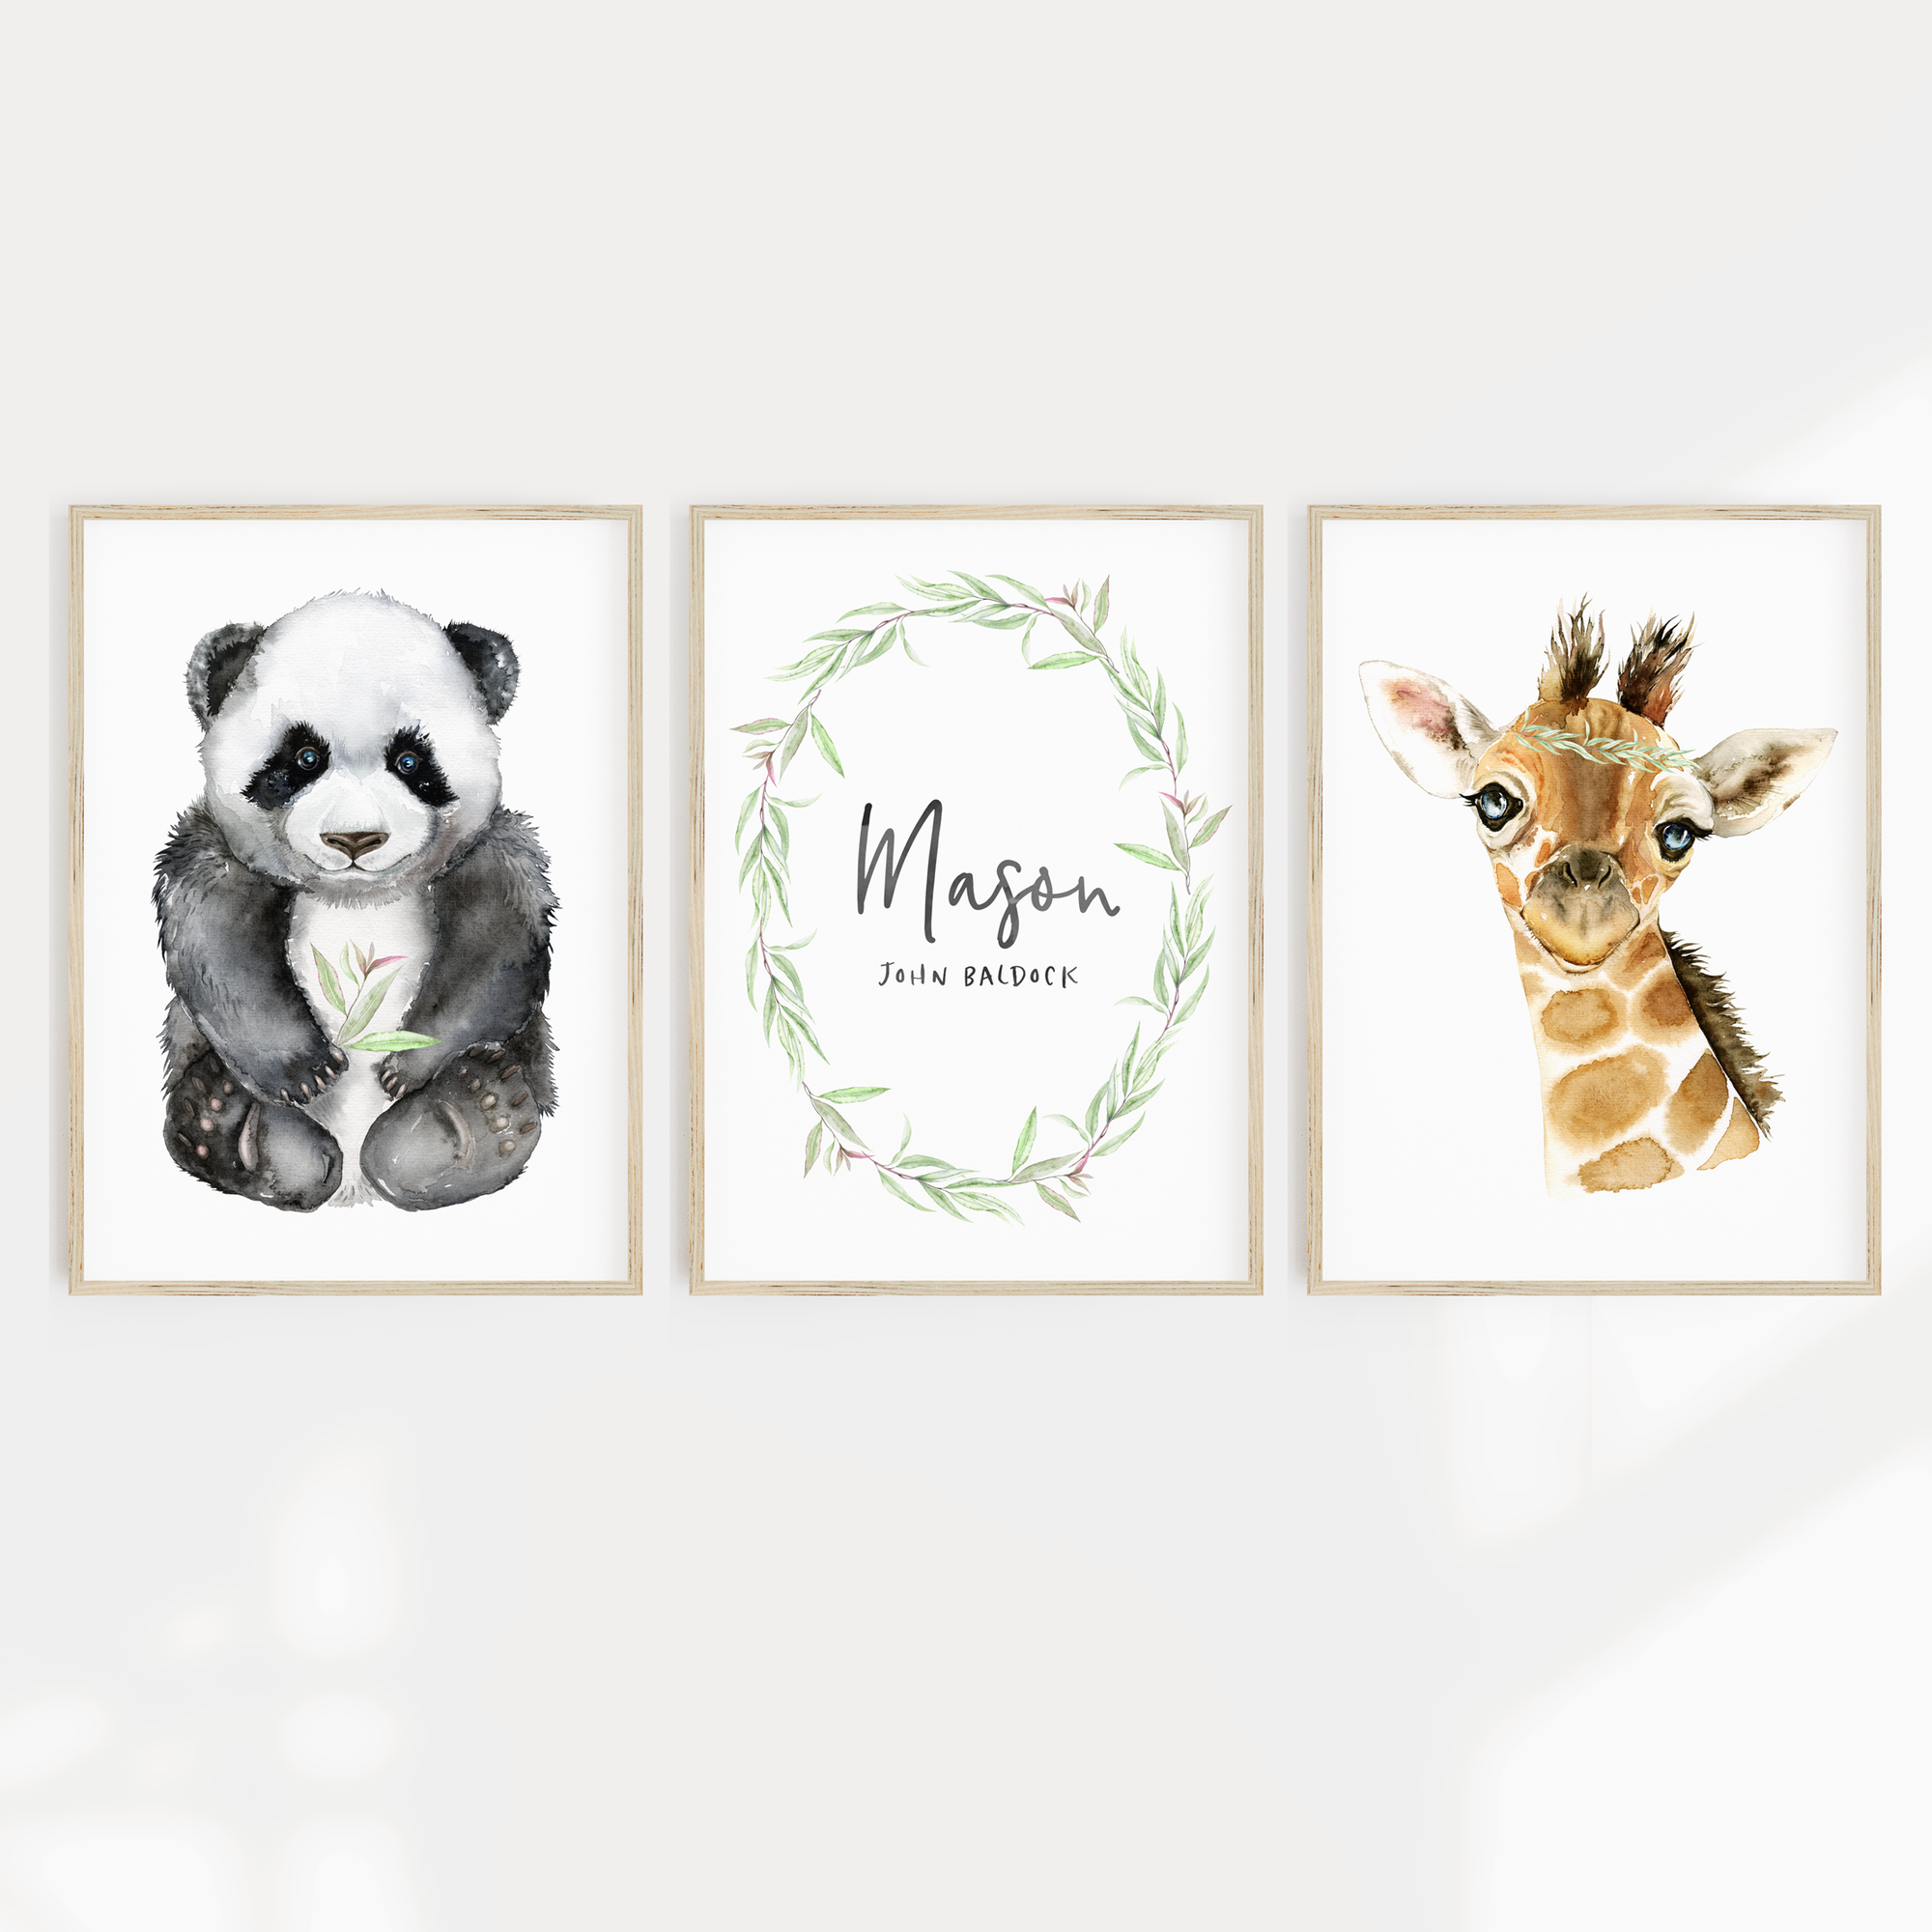 Panda & Giraffe Watercolour Nursery or Bedroom Print Set with Personalised Name